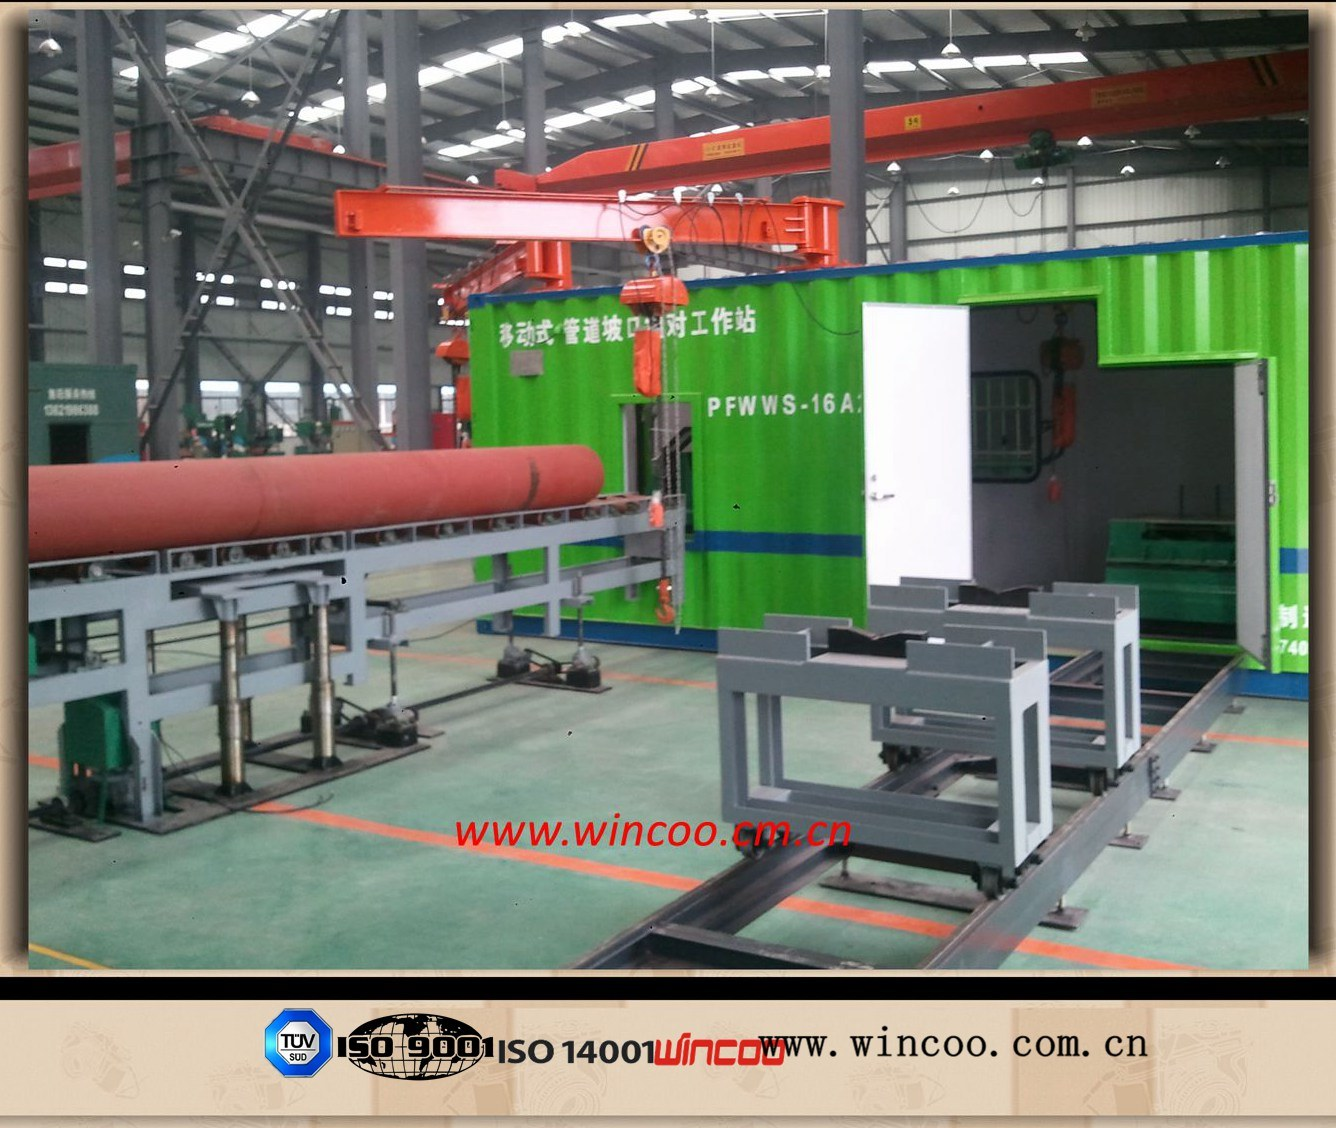 Pipe Spool Pipeline Fabrication Machines/Containerized Pipe Spool Fabrication System